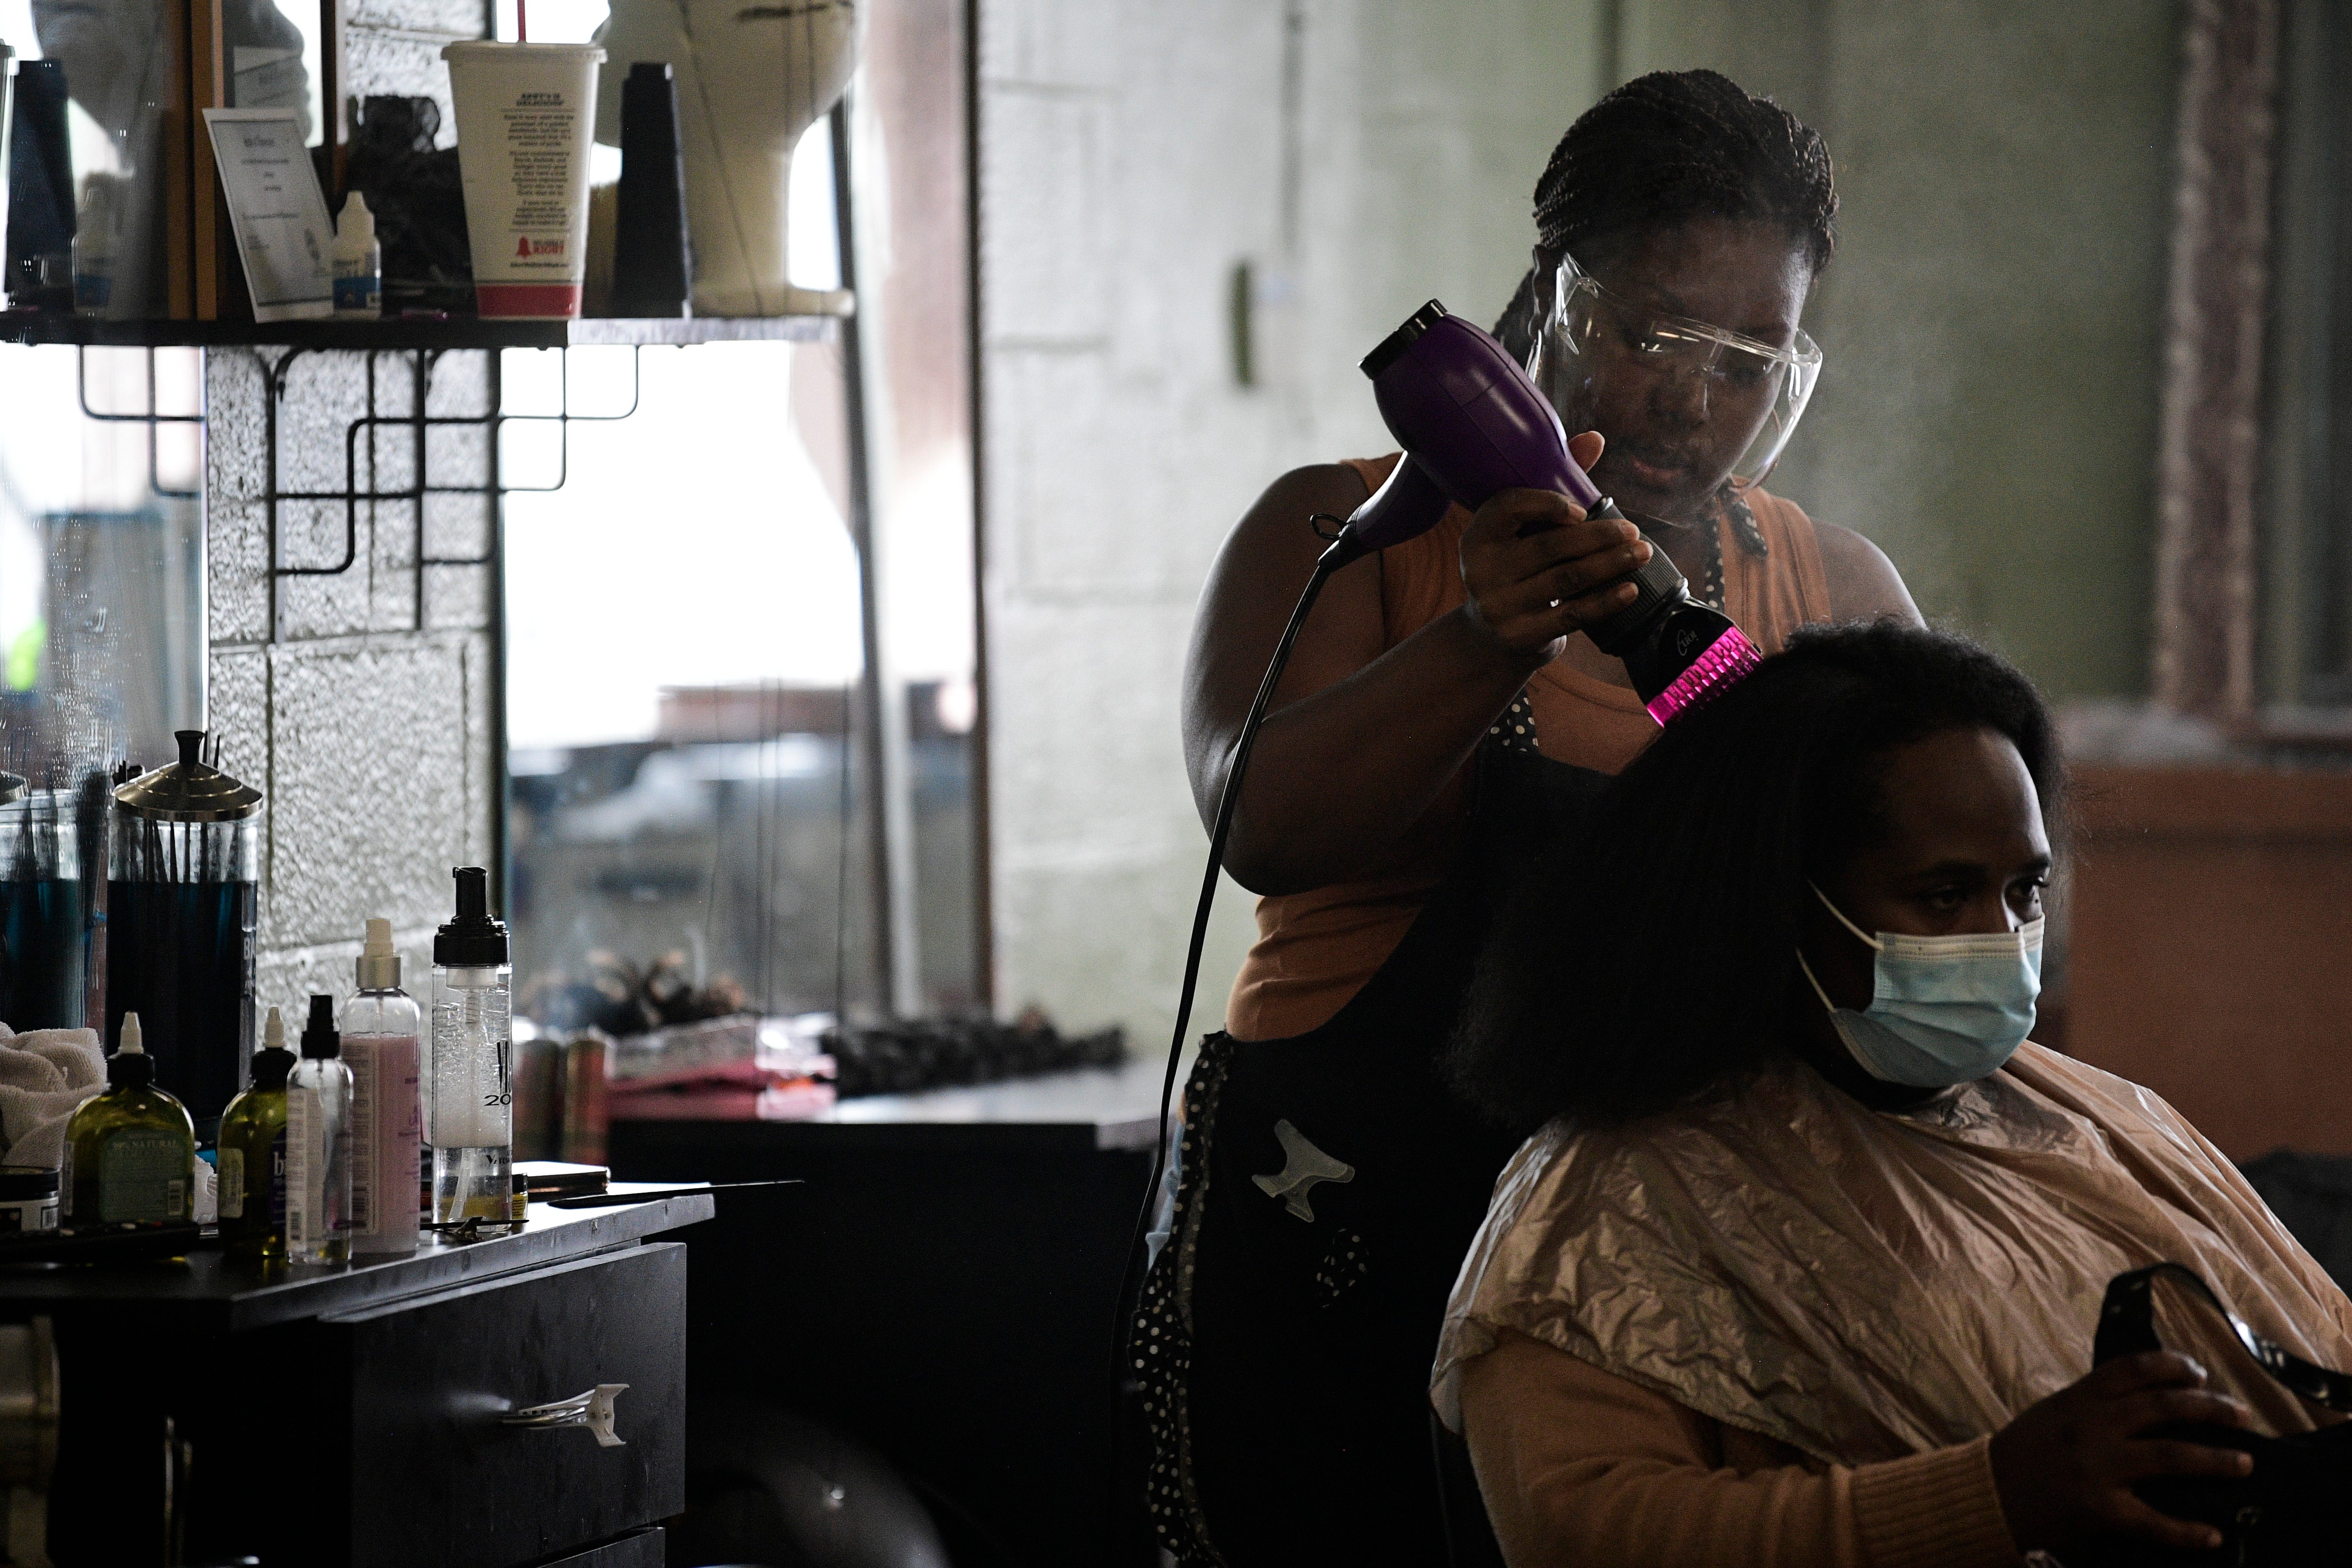 Chanta Barfield cuts the hair of a client named Denissa Smith